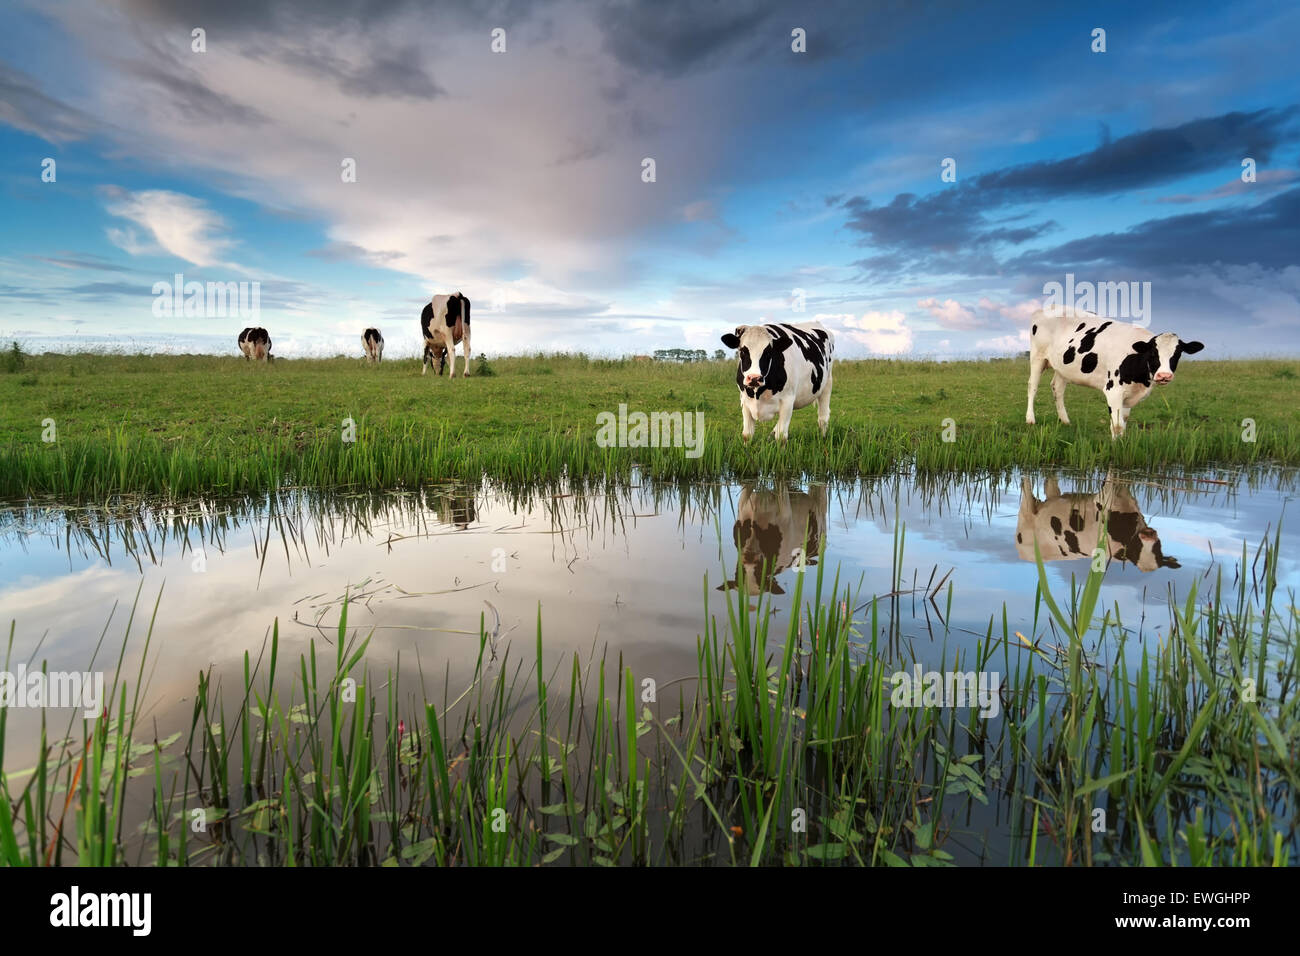 cows on pasture by river over sunset sky - Stock Image